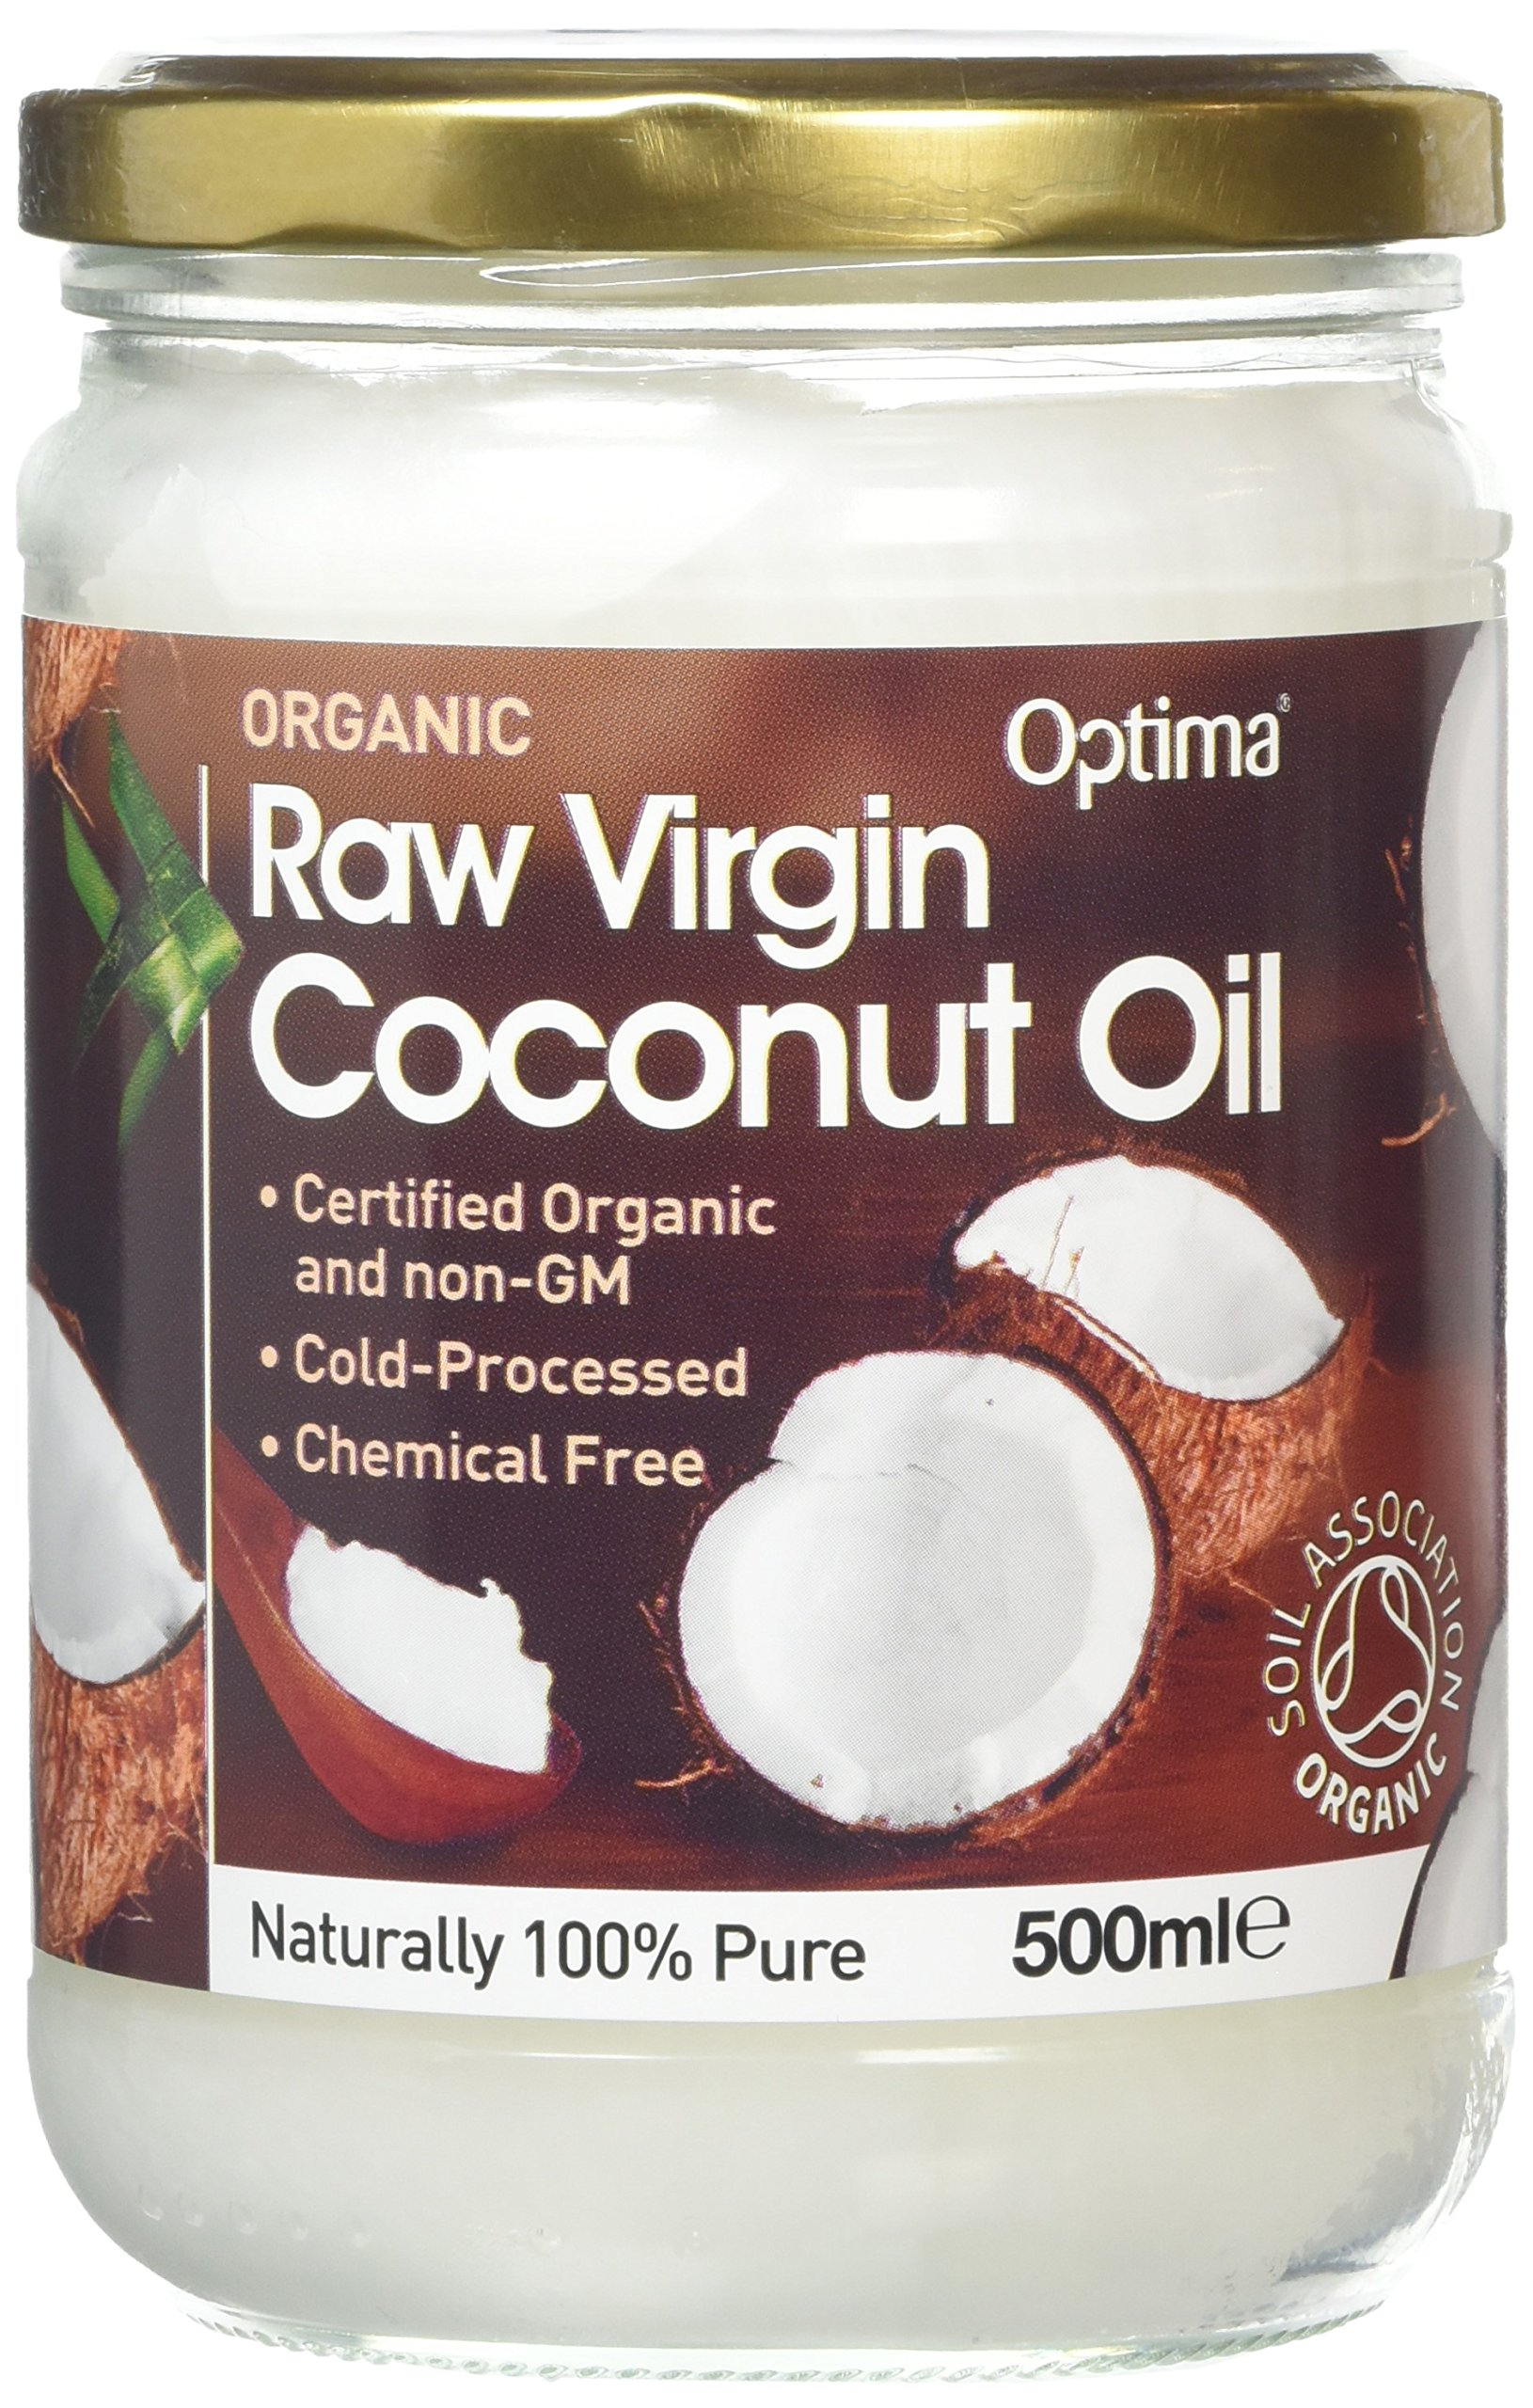 Organic Coconut Oil - 500ml product image